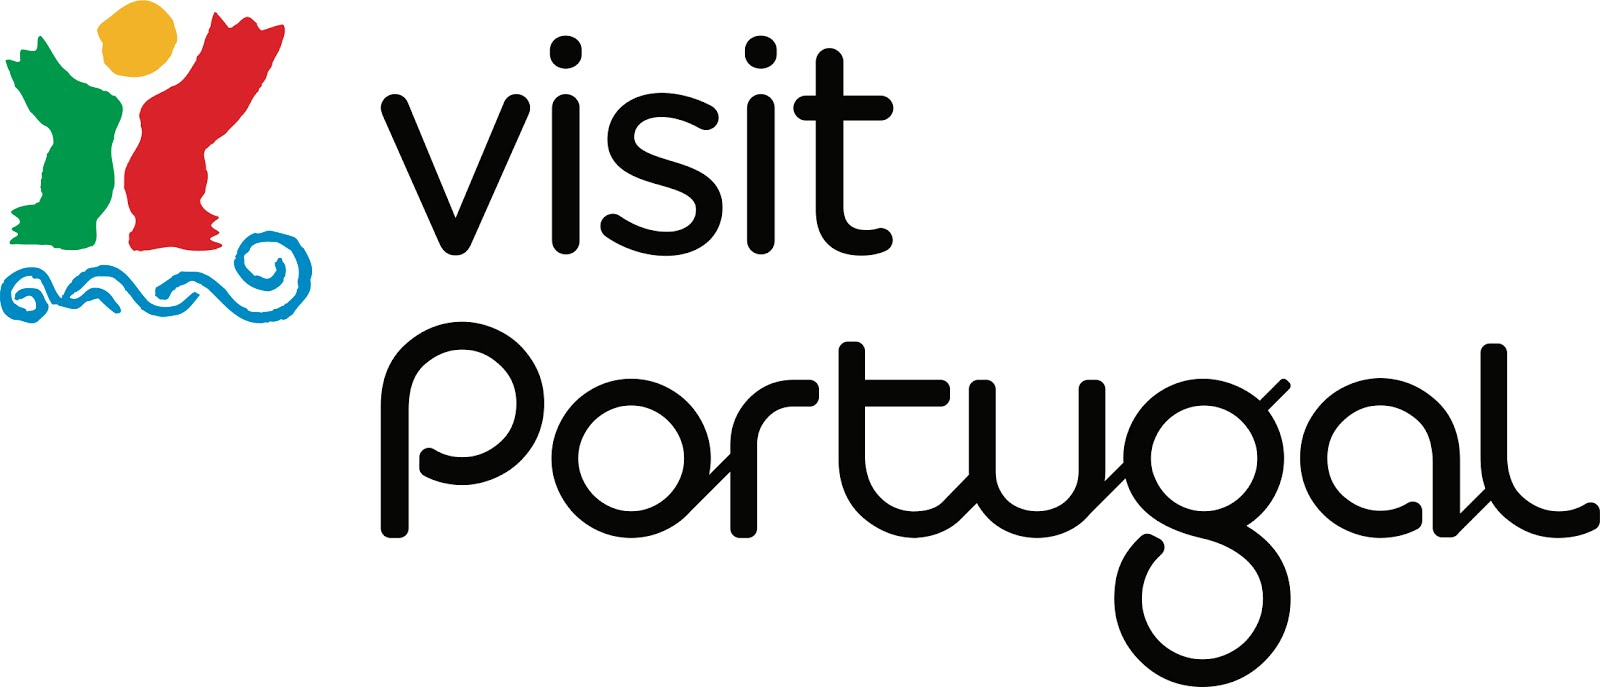 More information about Portugal: